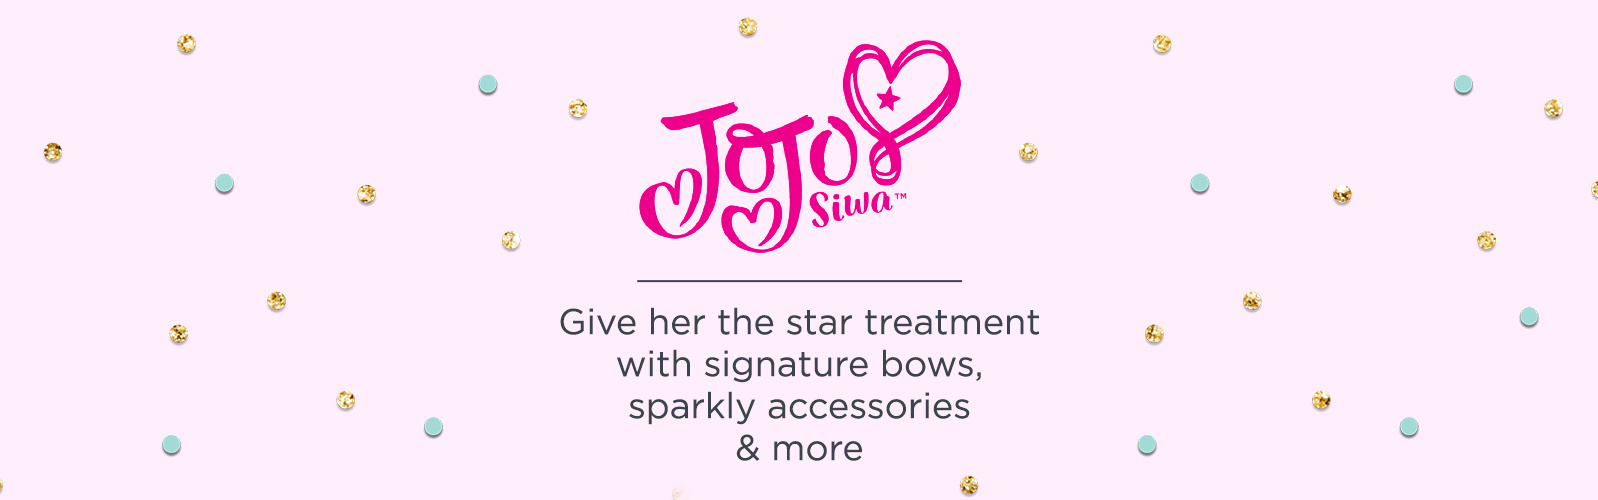 JoJo Siwa.  Give her the star treatment with signature bows, sparkly accessories & more